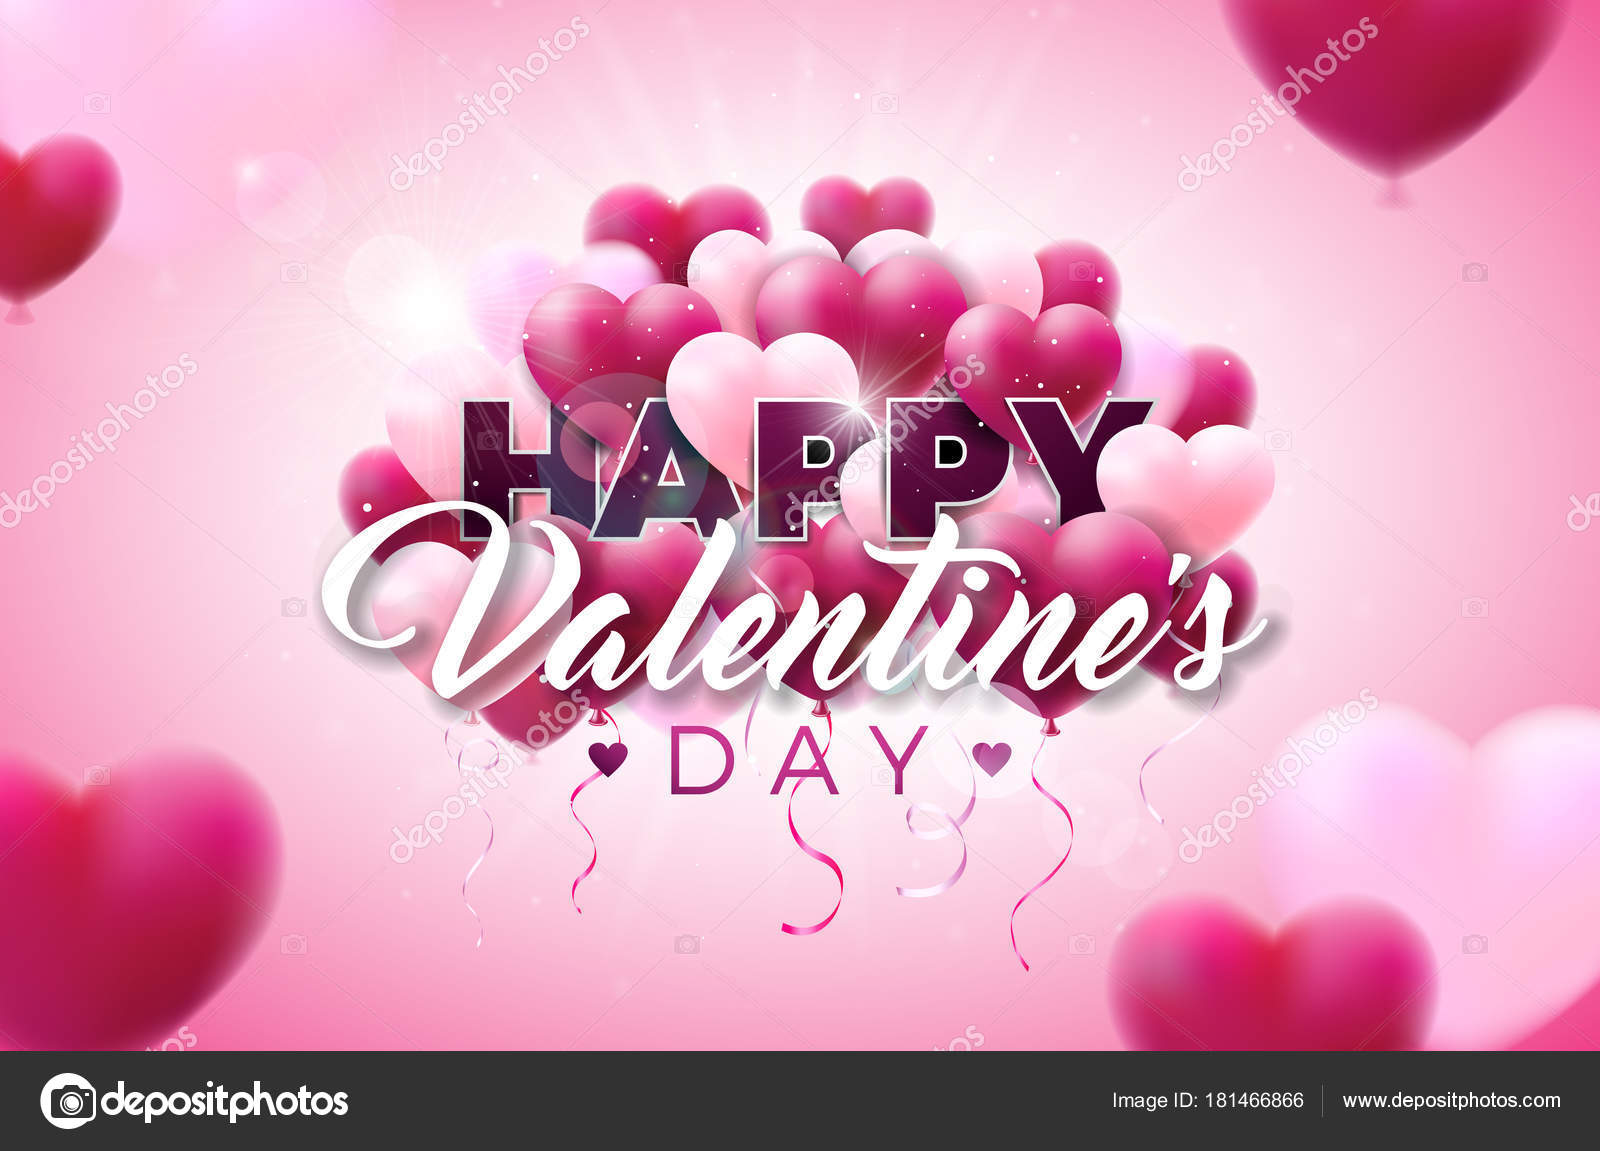 Valentines day illustration with heart balloon and typography valentines day illustration with heart balloon and typography letter on shiny pink background vector wedding stopboris Image collections